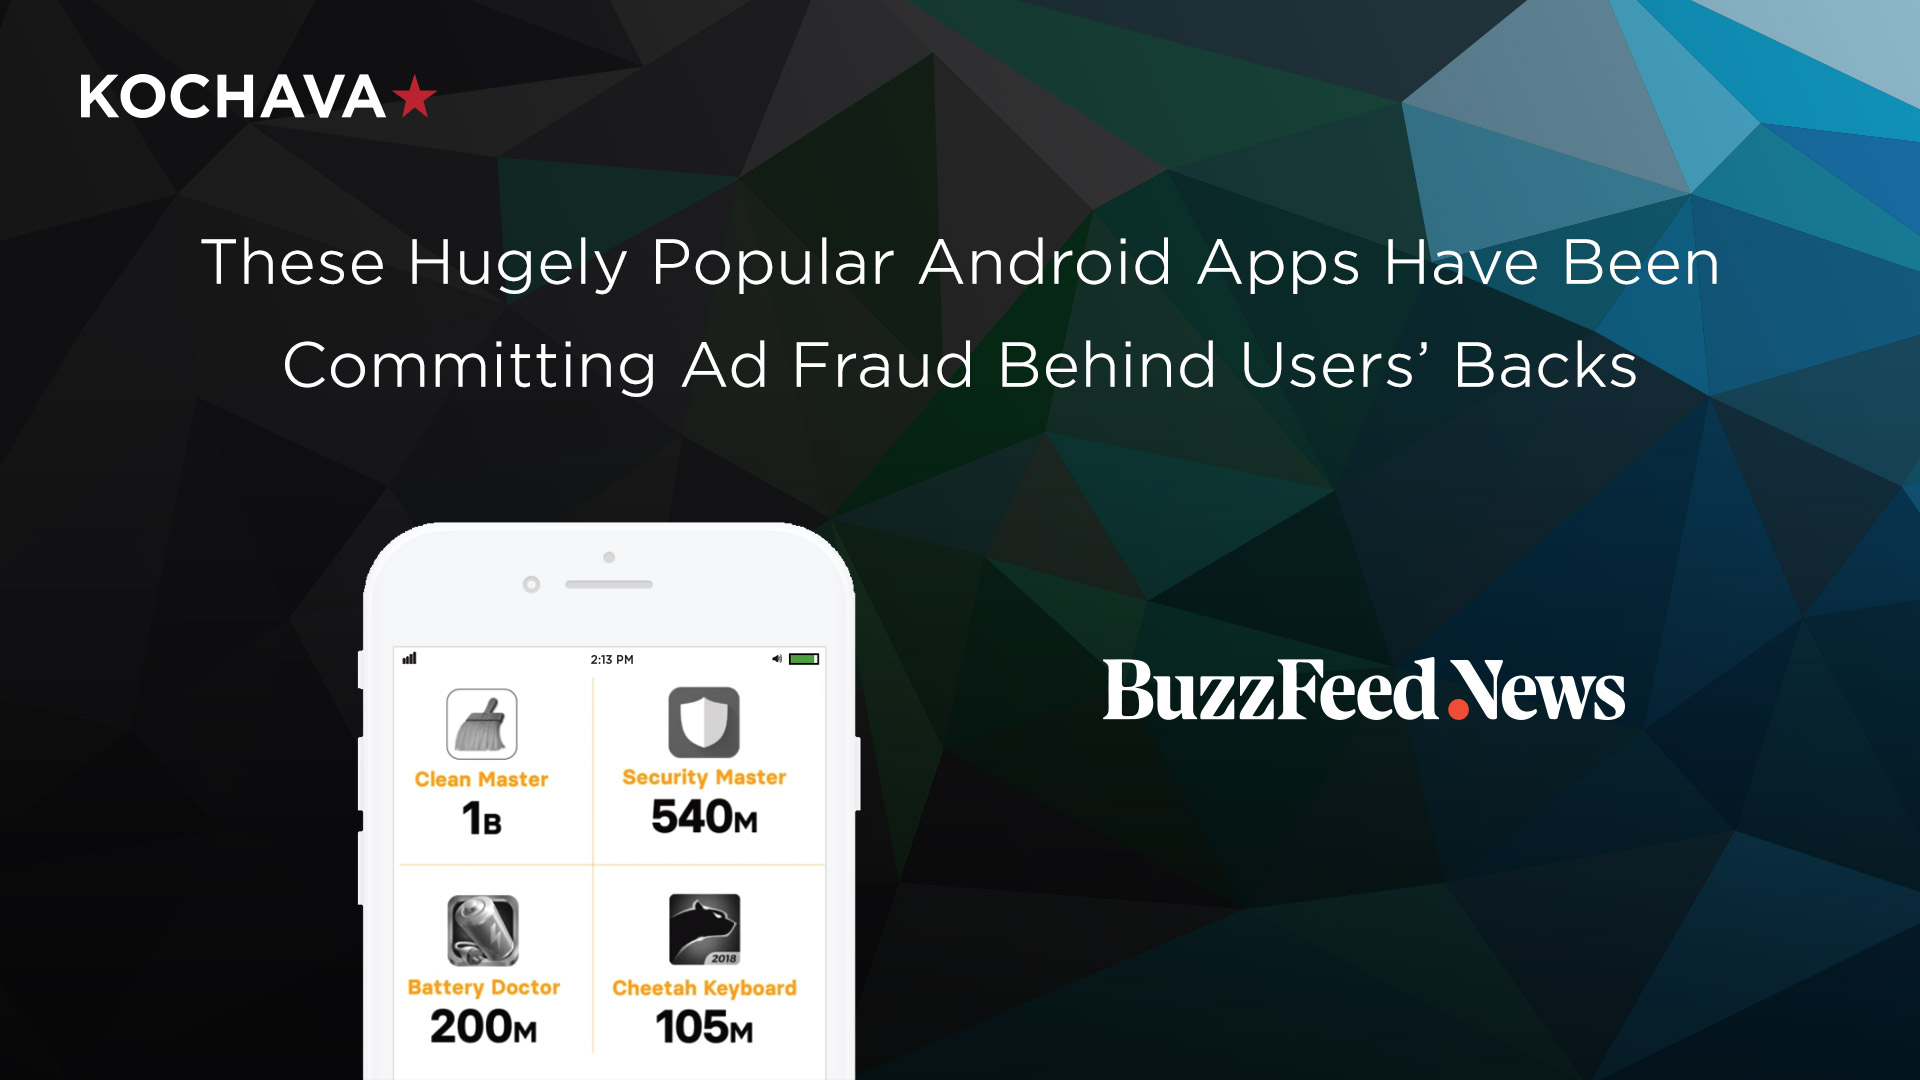 Popular Android Apps Committing Fraud